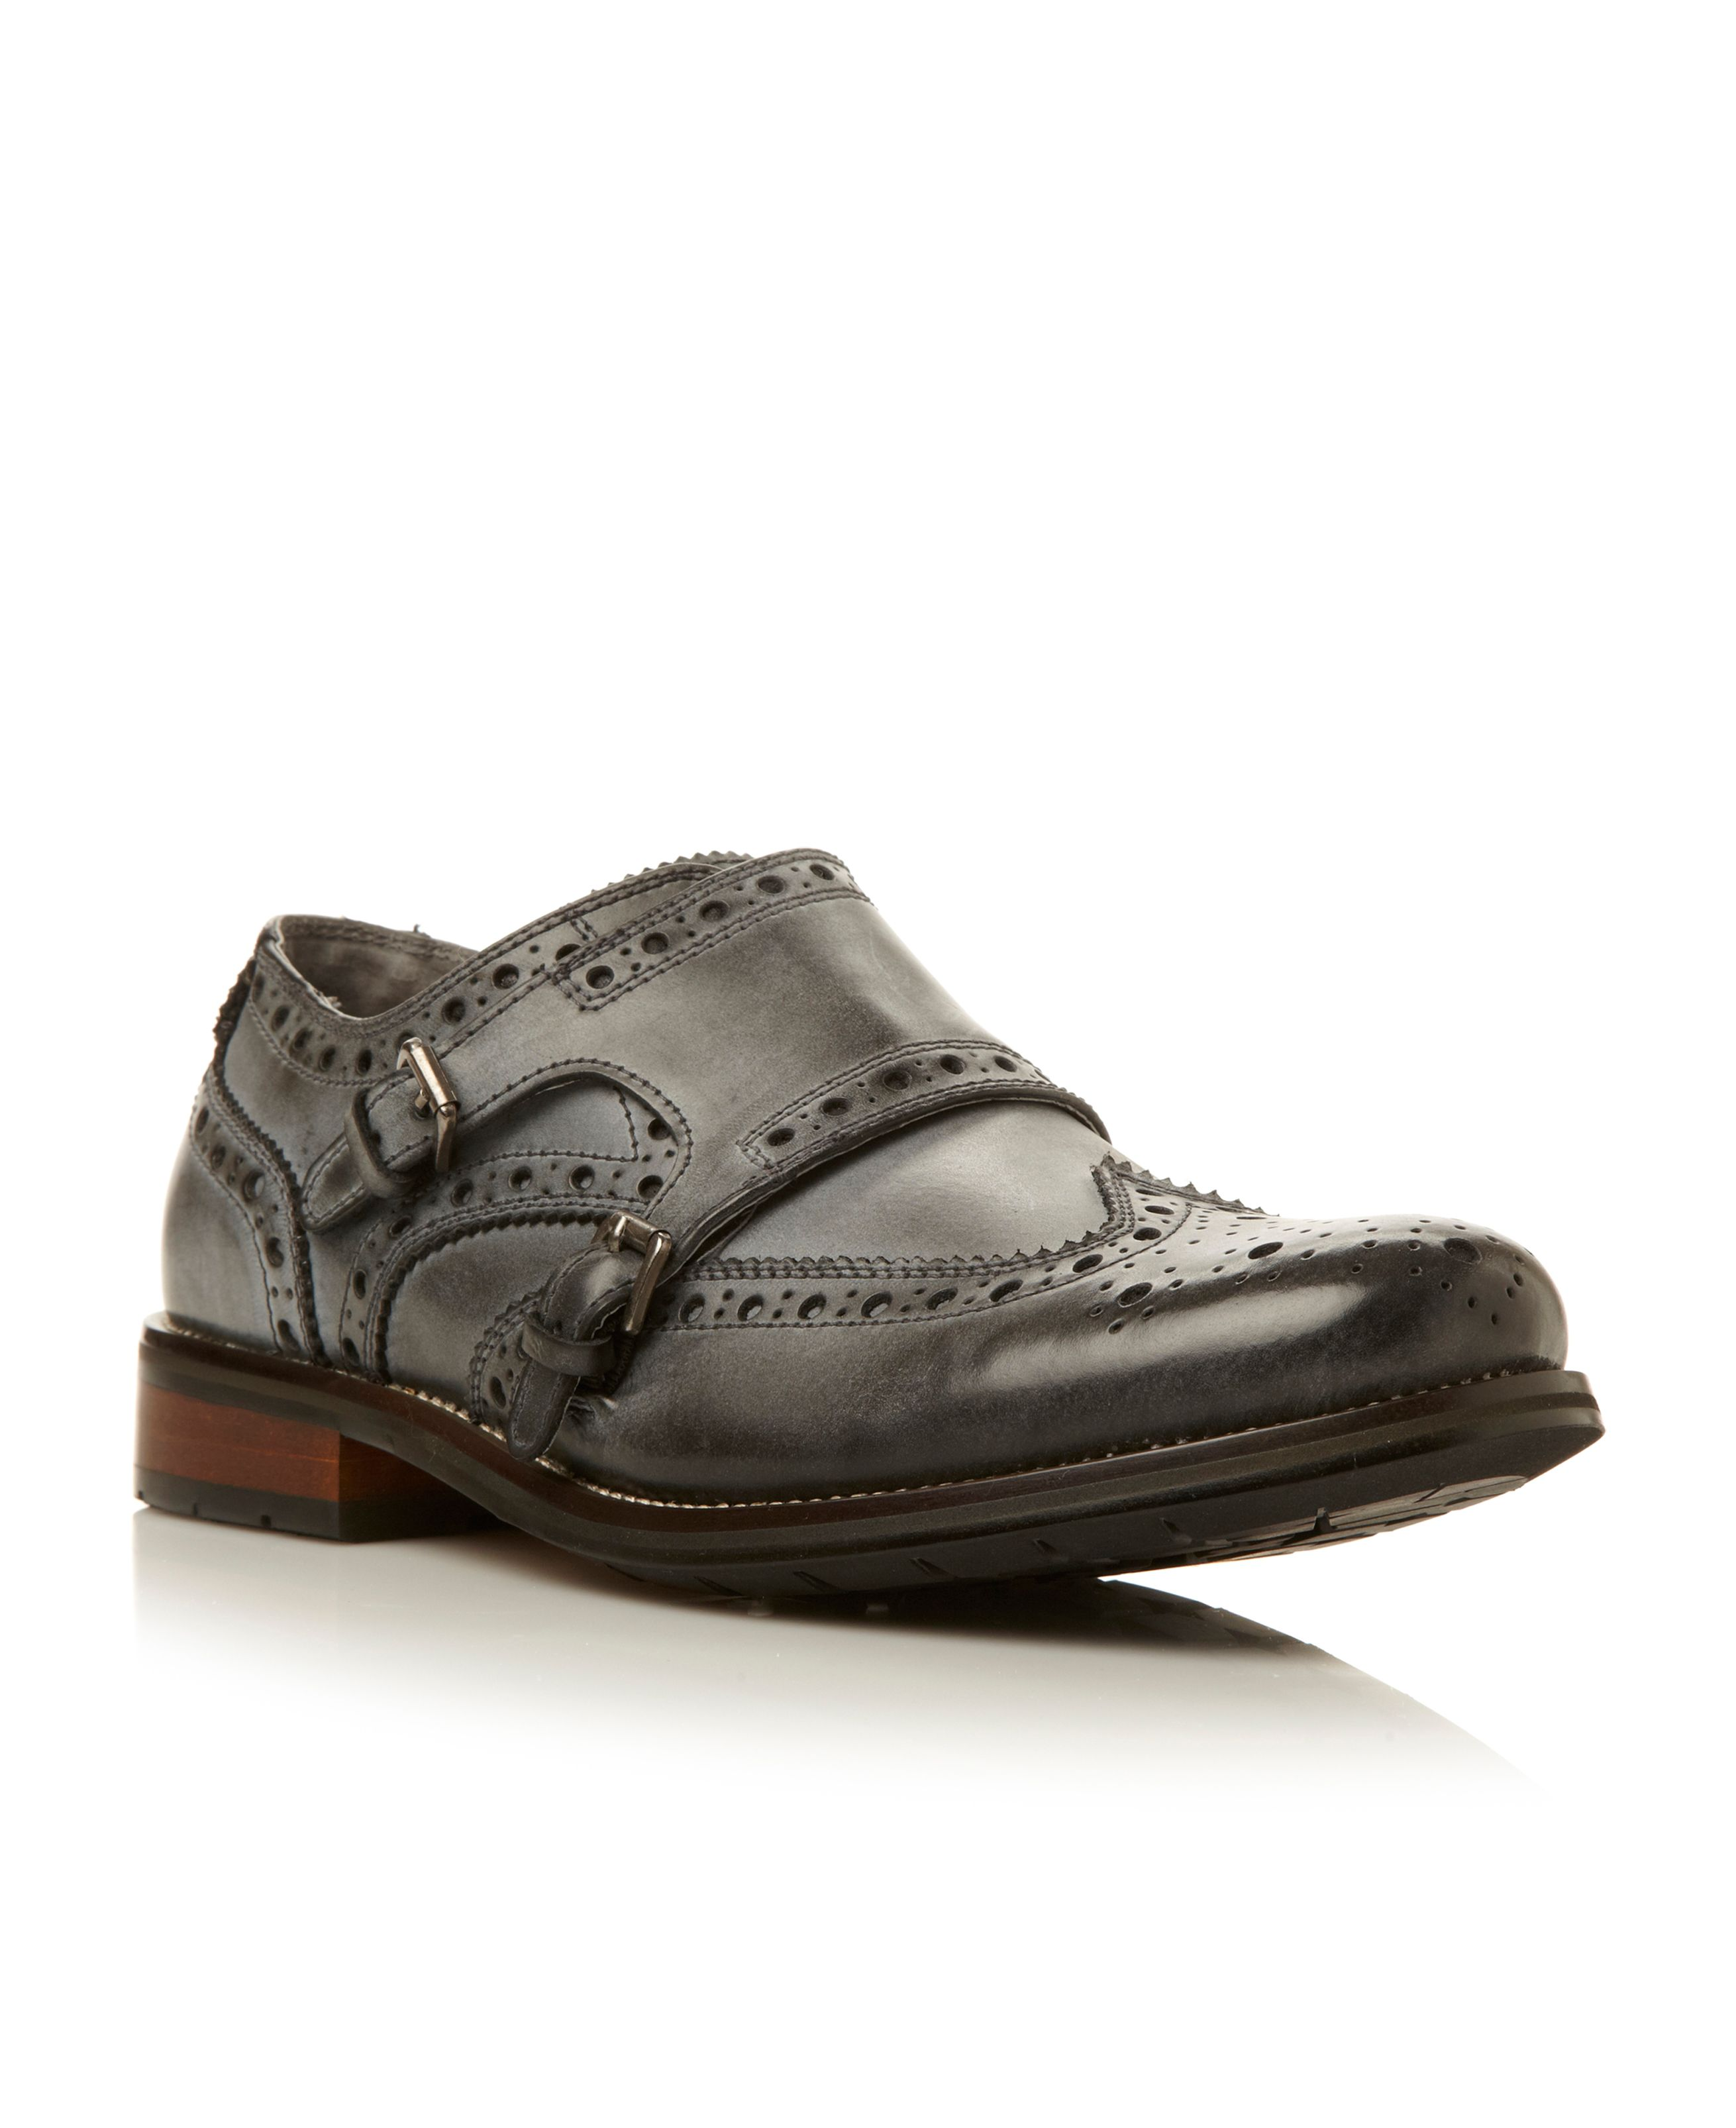 Exec double monk brogue shoe